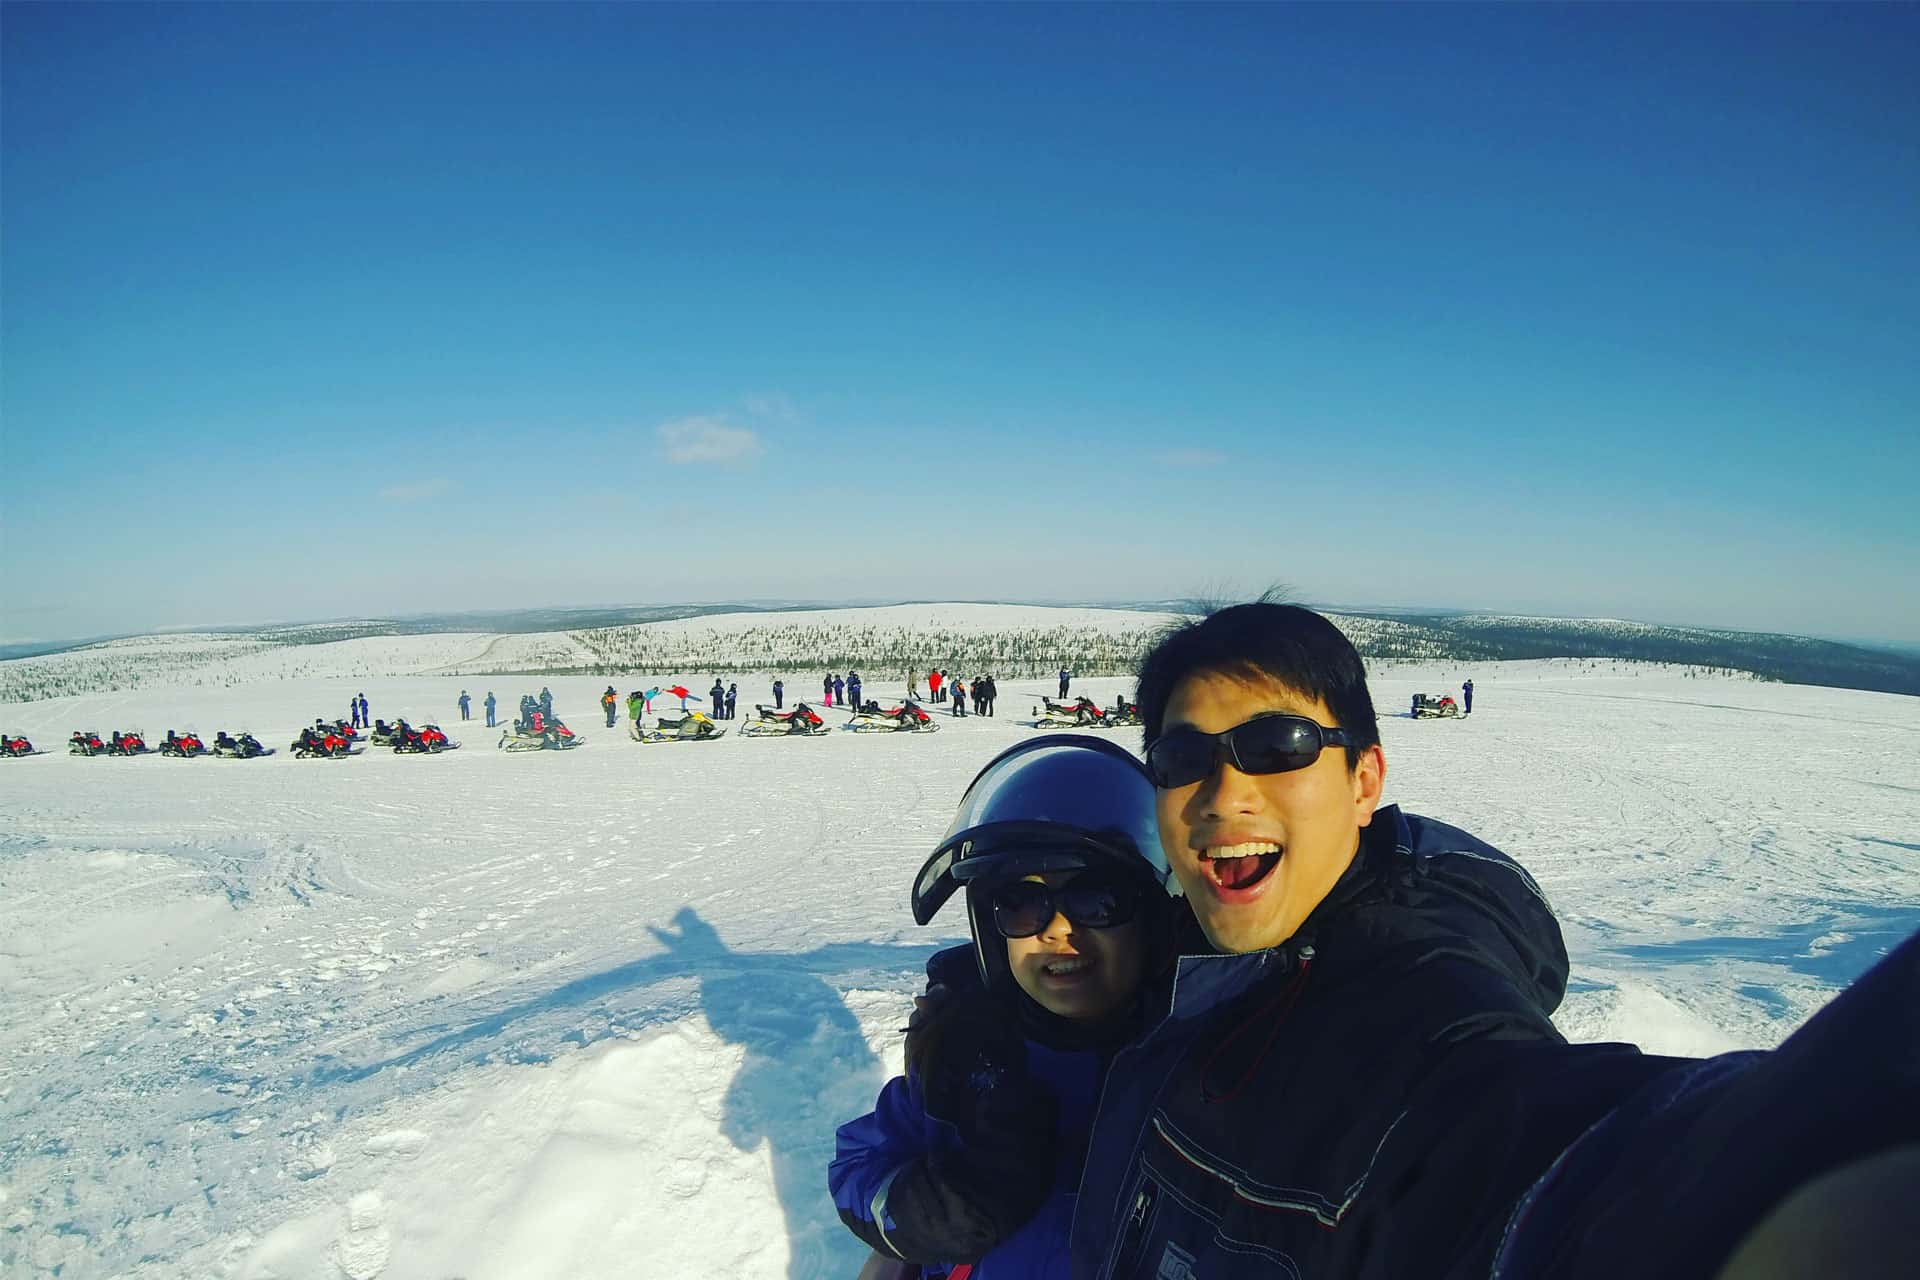 We Snowmobiled up to the top of the hill for a panoramic view!